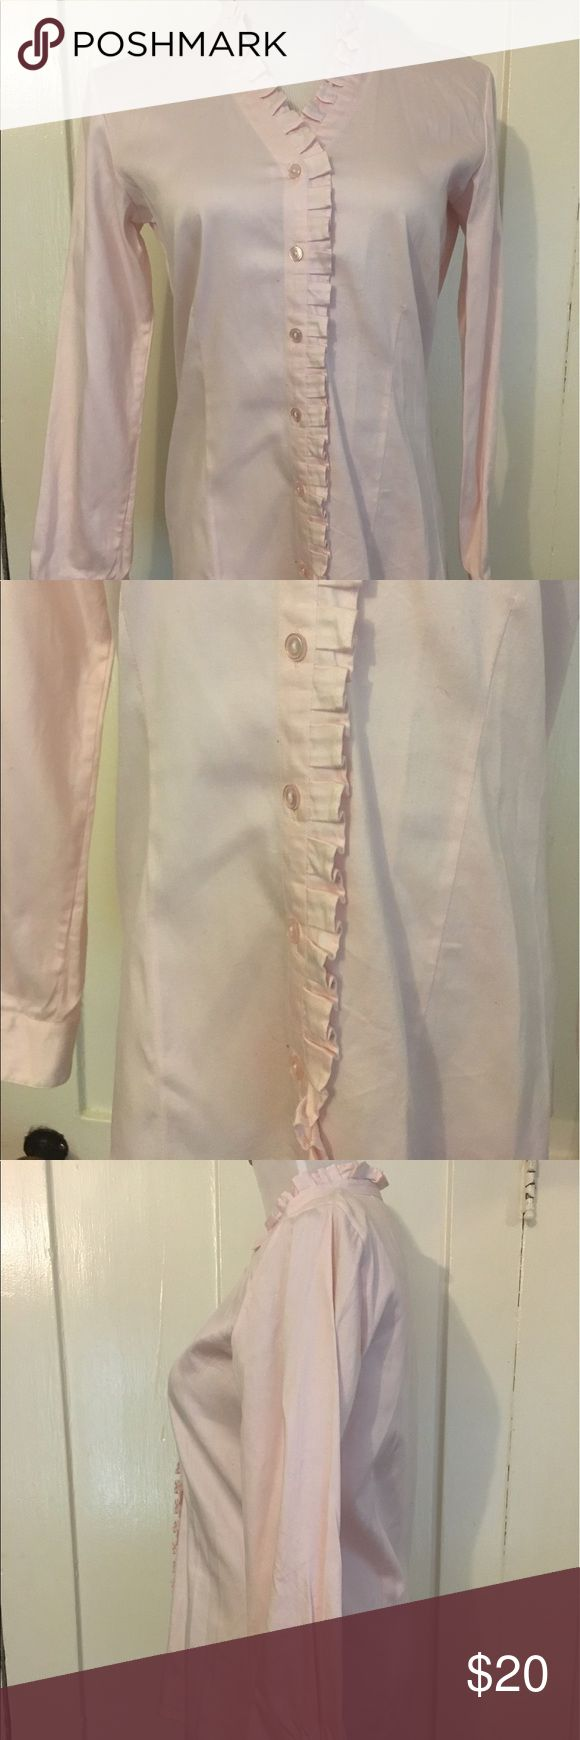 Chico's Sz 0/SM Pale Pink Stretch Cotton Ruffled Great tailored Blouse with Ruffled trim. Longer length for tucking in. No amaze at all. Stretch cotton so doesn't wrinkle too badly. Chico's size 0 is a size 6ish. Chico's Tops Button Down Shirts